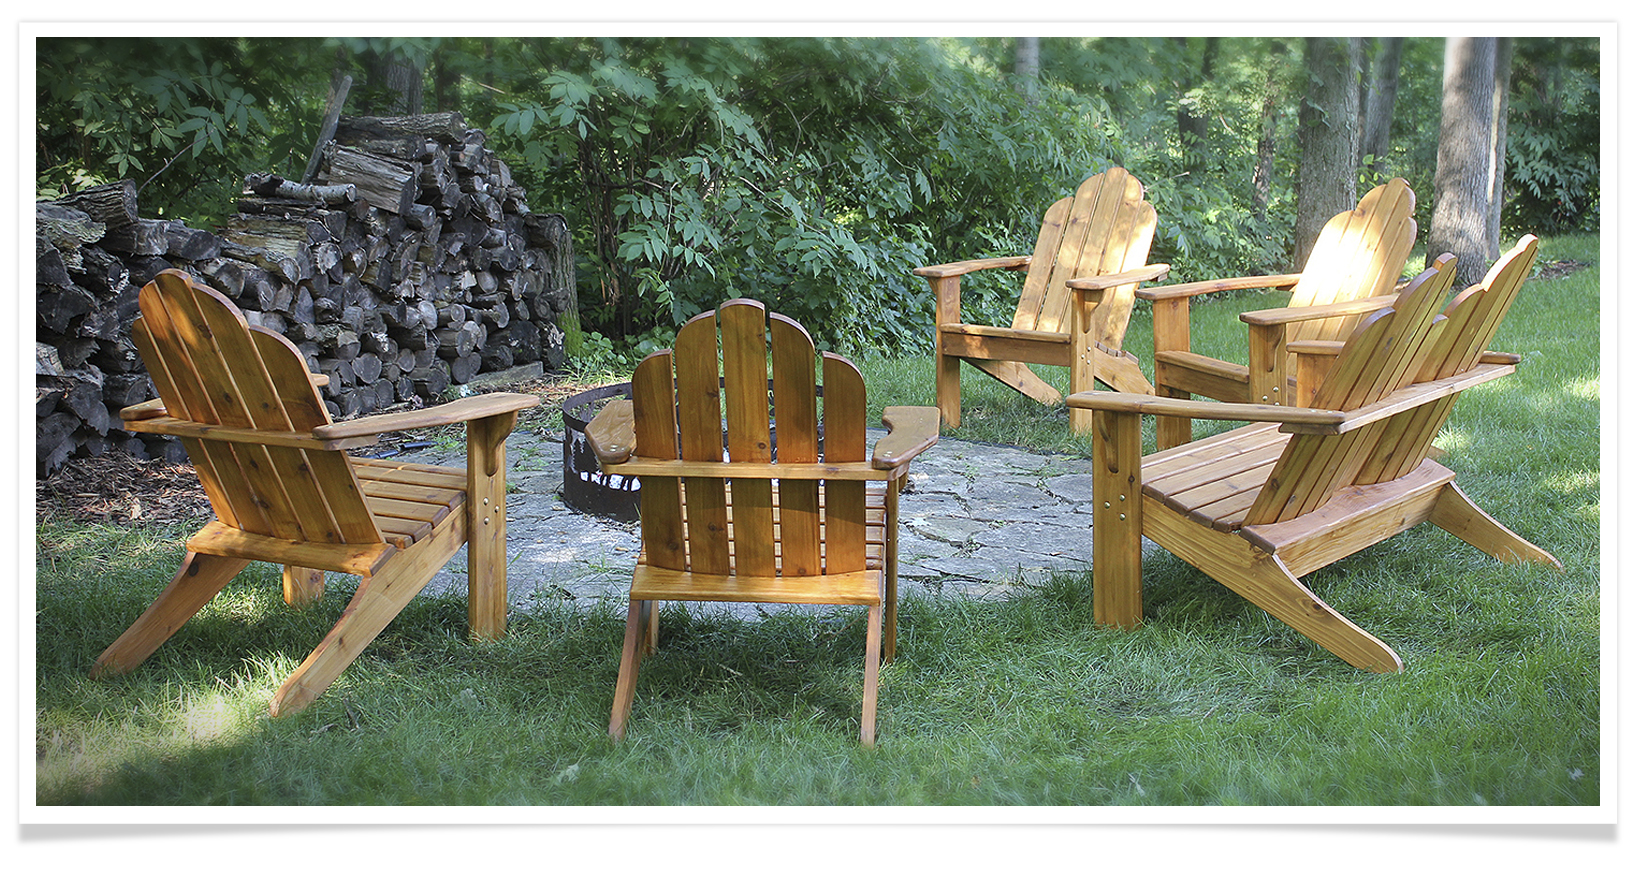 One of many, and I mean many, fire pits outfitted with Saegerville Cedar in the Twin Cities. This one is right down the road in Eagan, MN.